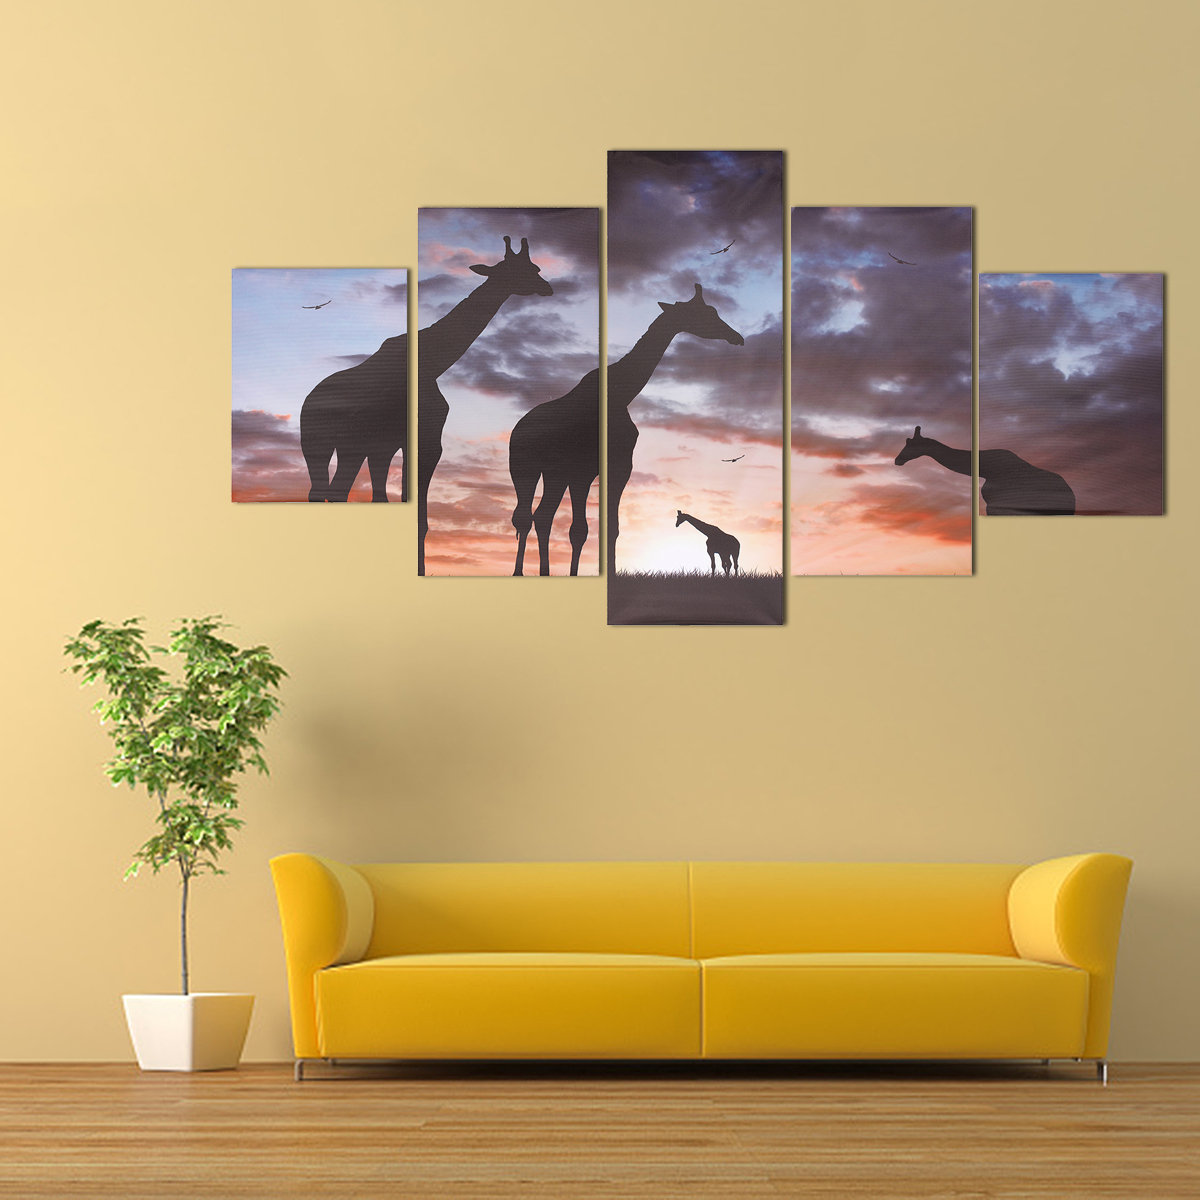 5Pcs Modern Canvas Painting Frameless Wall Art Giraffes Bedroom ...